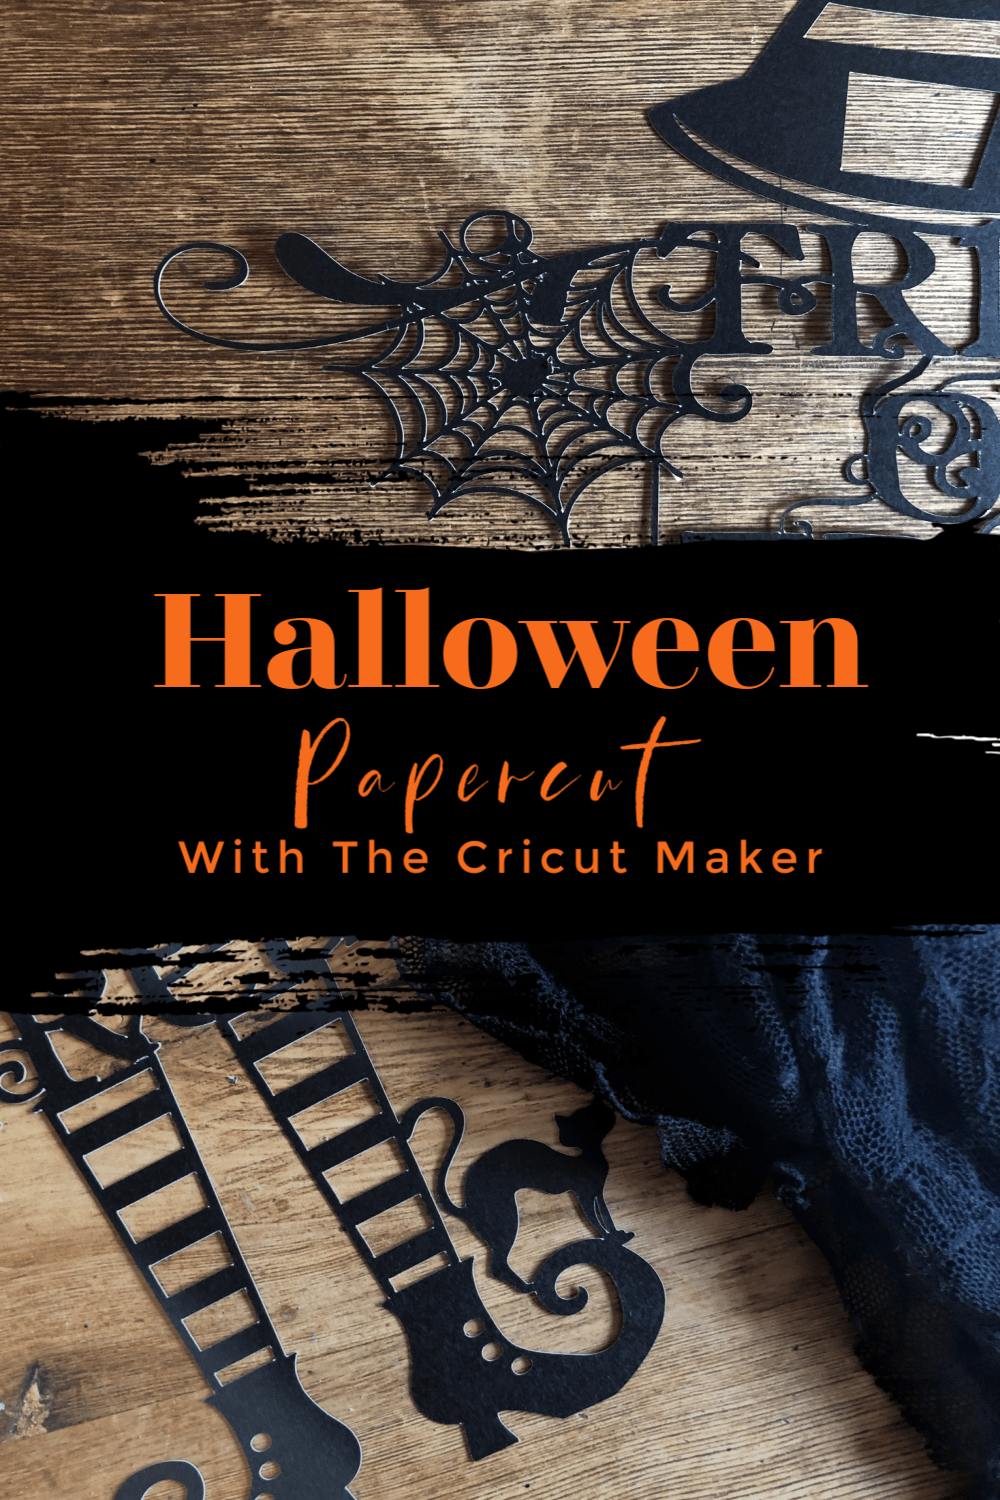 Halloween Papercut With The Cricut Maker